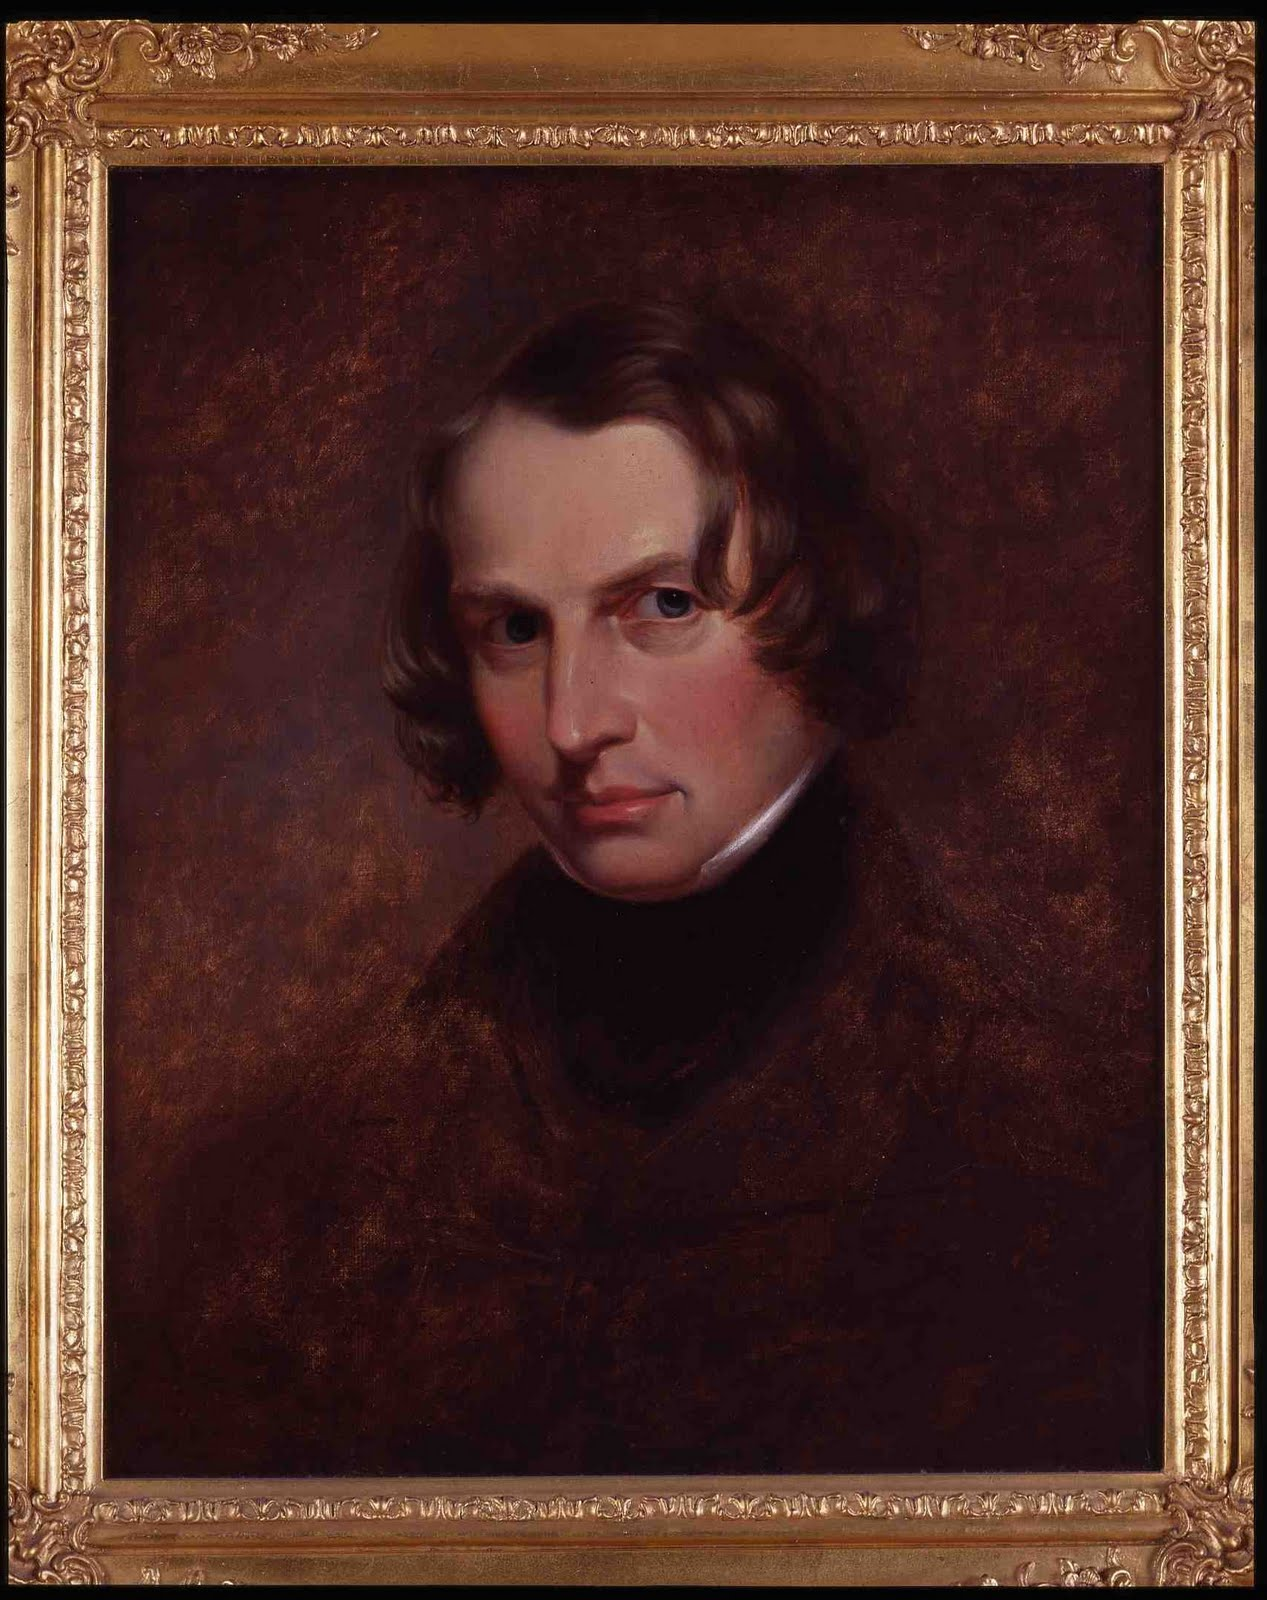 """henry wadsworth longfellow """"a psalm of life"""" is an inspiring poem written by the american poet henry wadsworth longfellow the poem was first published in the october 1838 issue of the knickerbocker or new-york monthly magazine, a magazine published in the new york city."""